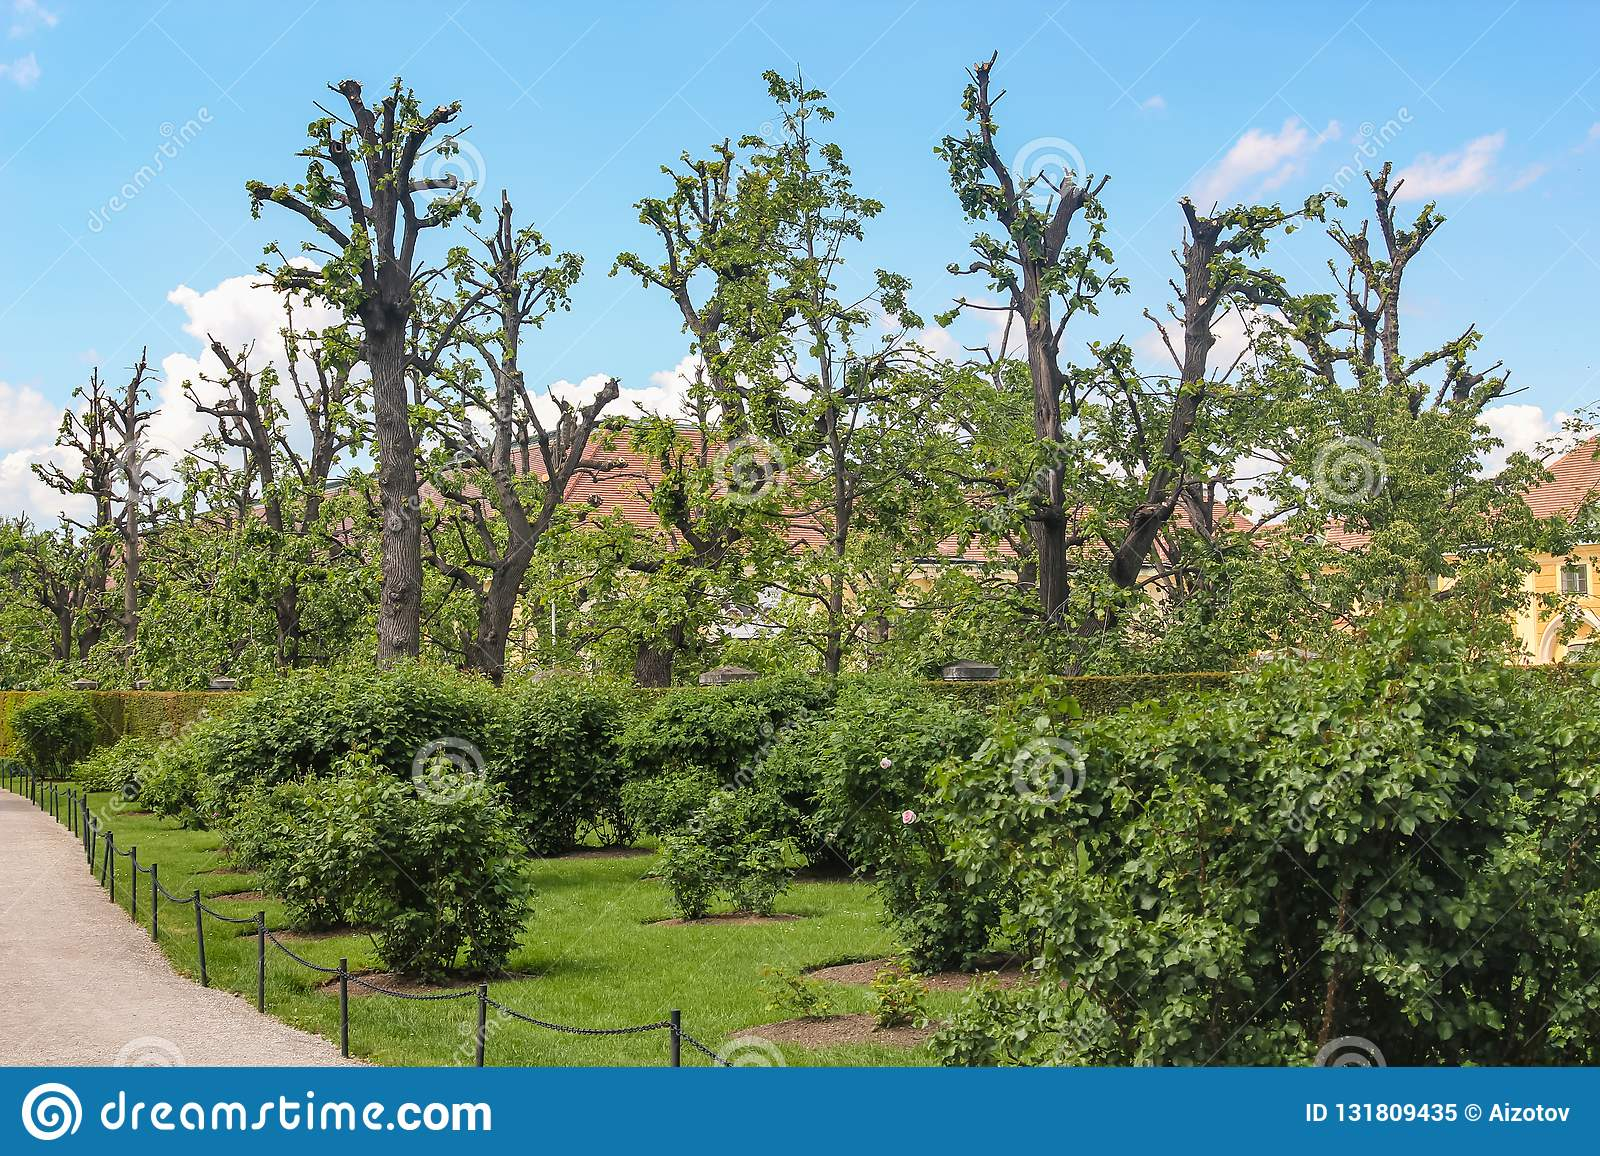 Little house in the garden with trimmed apple trees near Vienna Austria